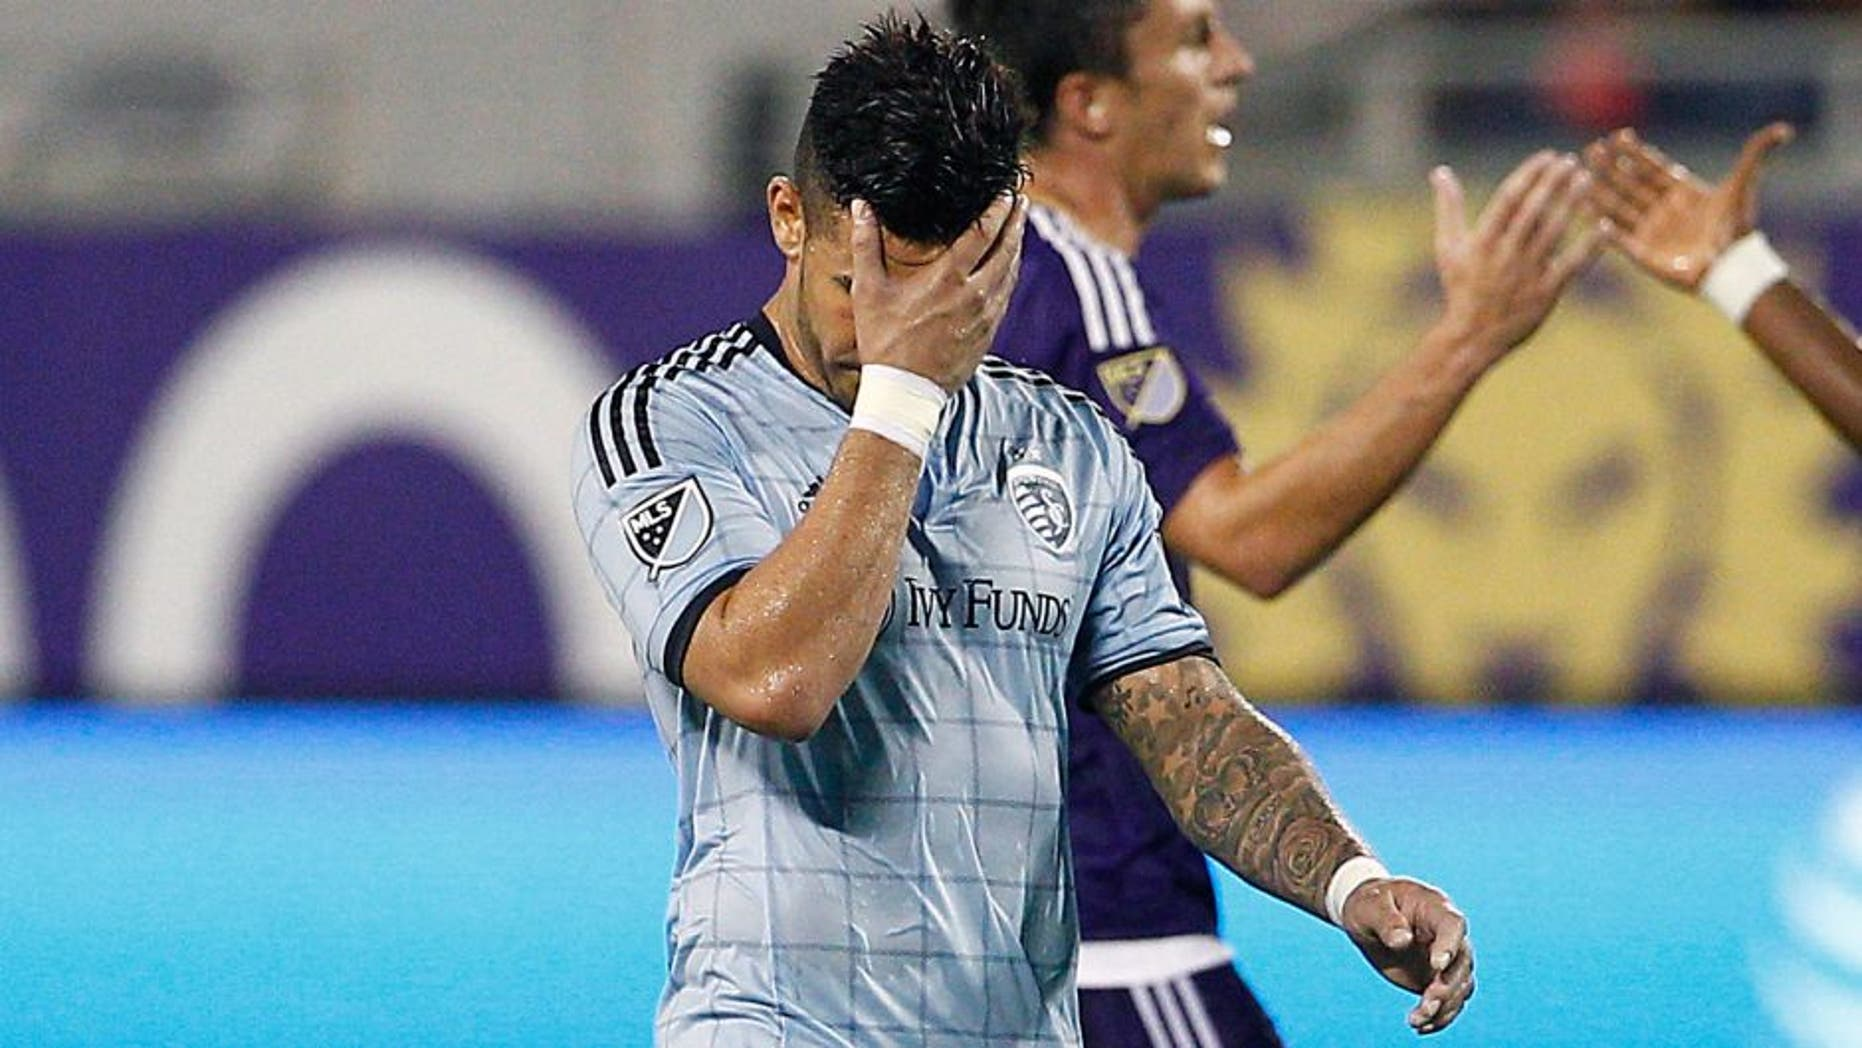 Sep 13, 2015; Orlando, FL, USA; Sporting KC forward Dom Dwyer (14) covers his face after being issued a red card during the second half against the Orlando City FC at Orlando Citrus Bowl Stadium. Mandatory Credit: Reinhold Matay-USA TODAY Sports